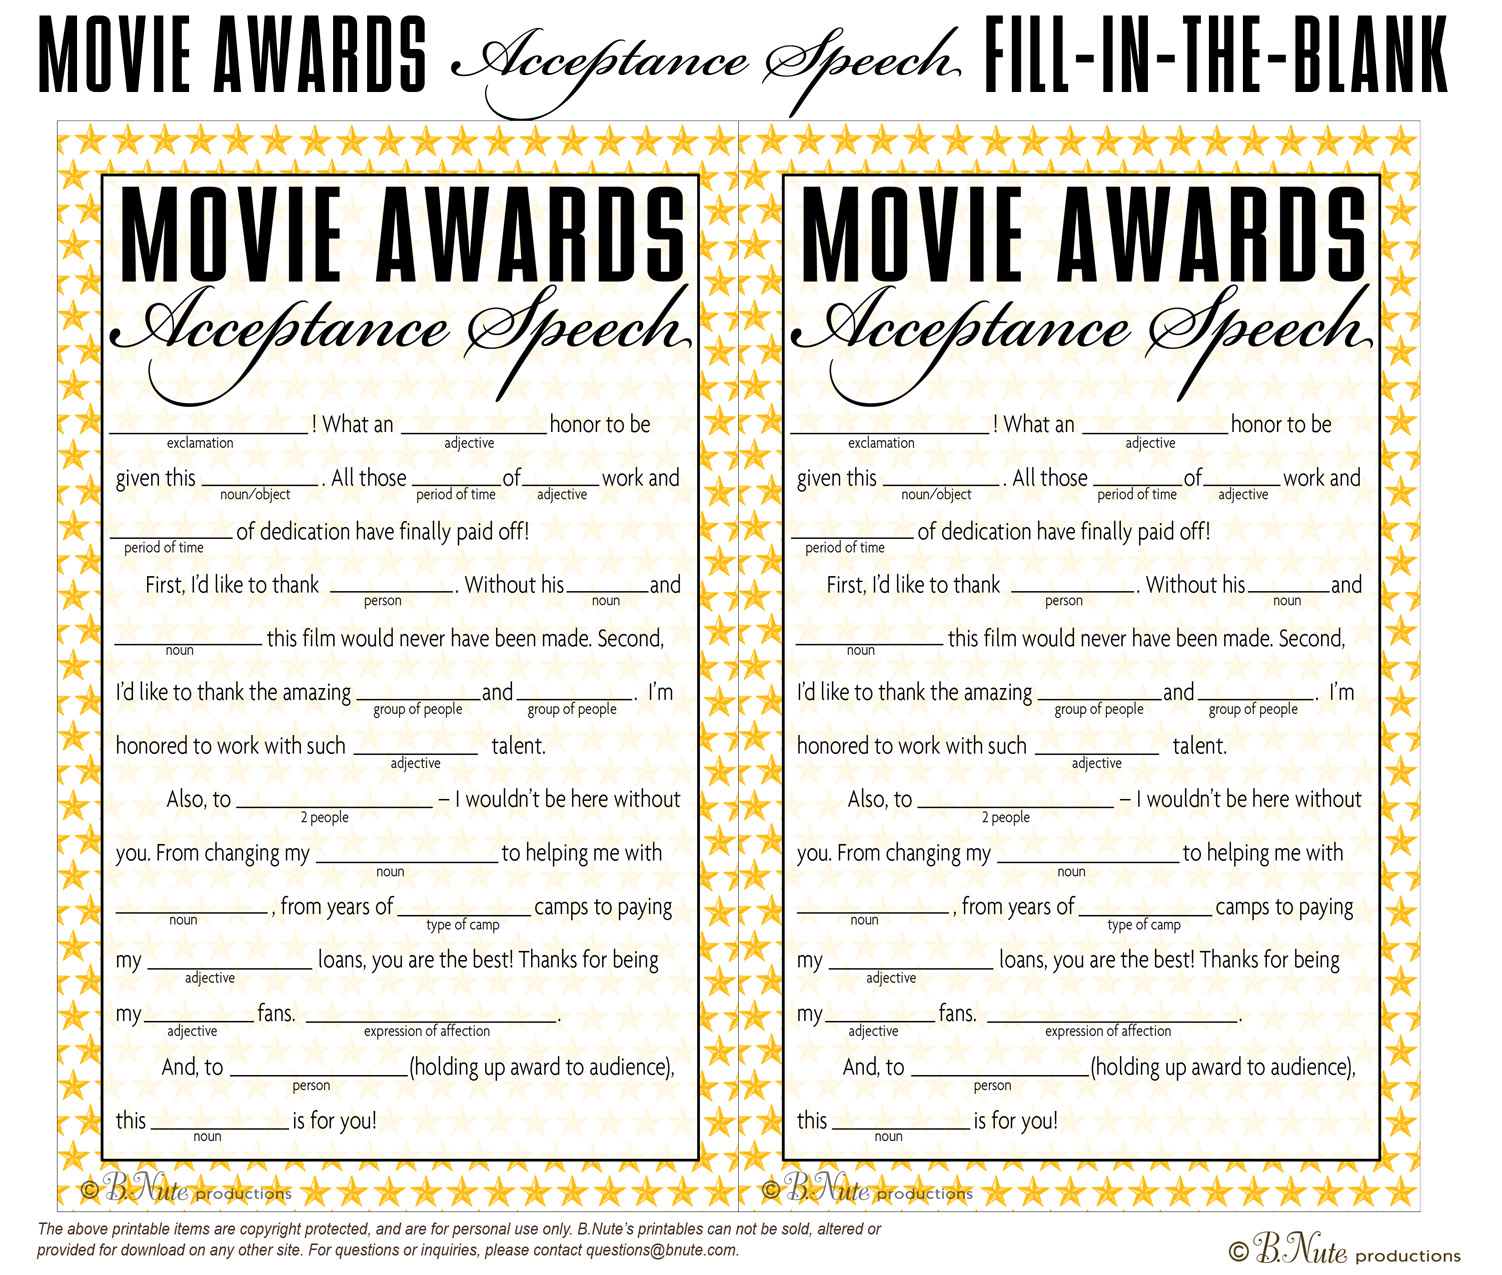 Bnute productions free printable oscar party game acceptance free printable movie awards acceptance speech game by bte productions spiritdancerdesigns Gallery